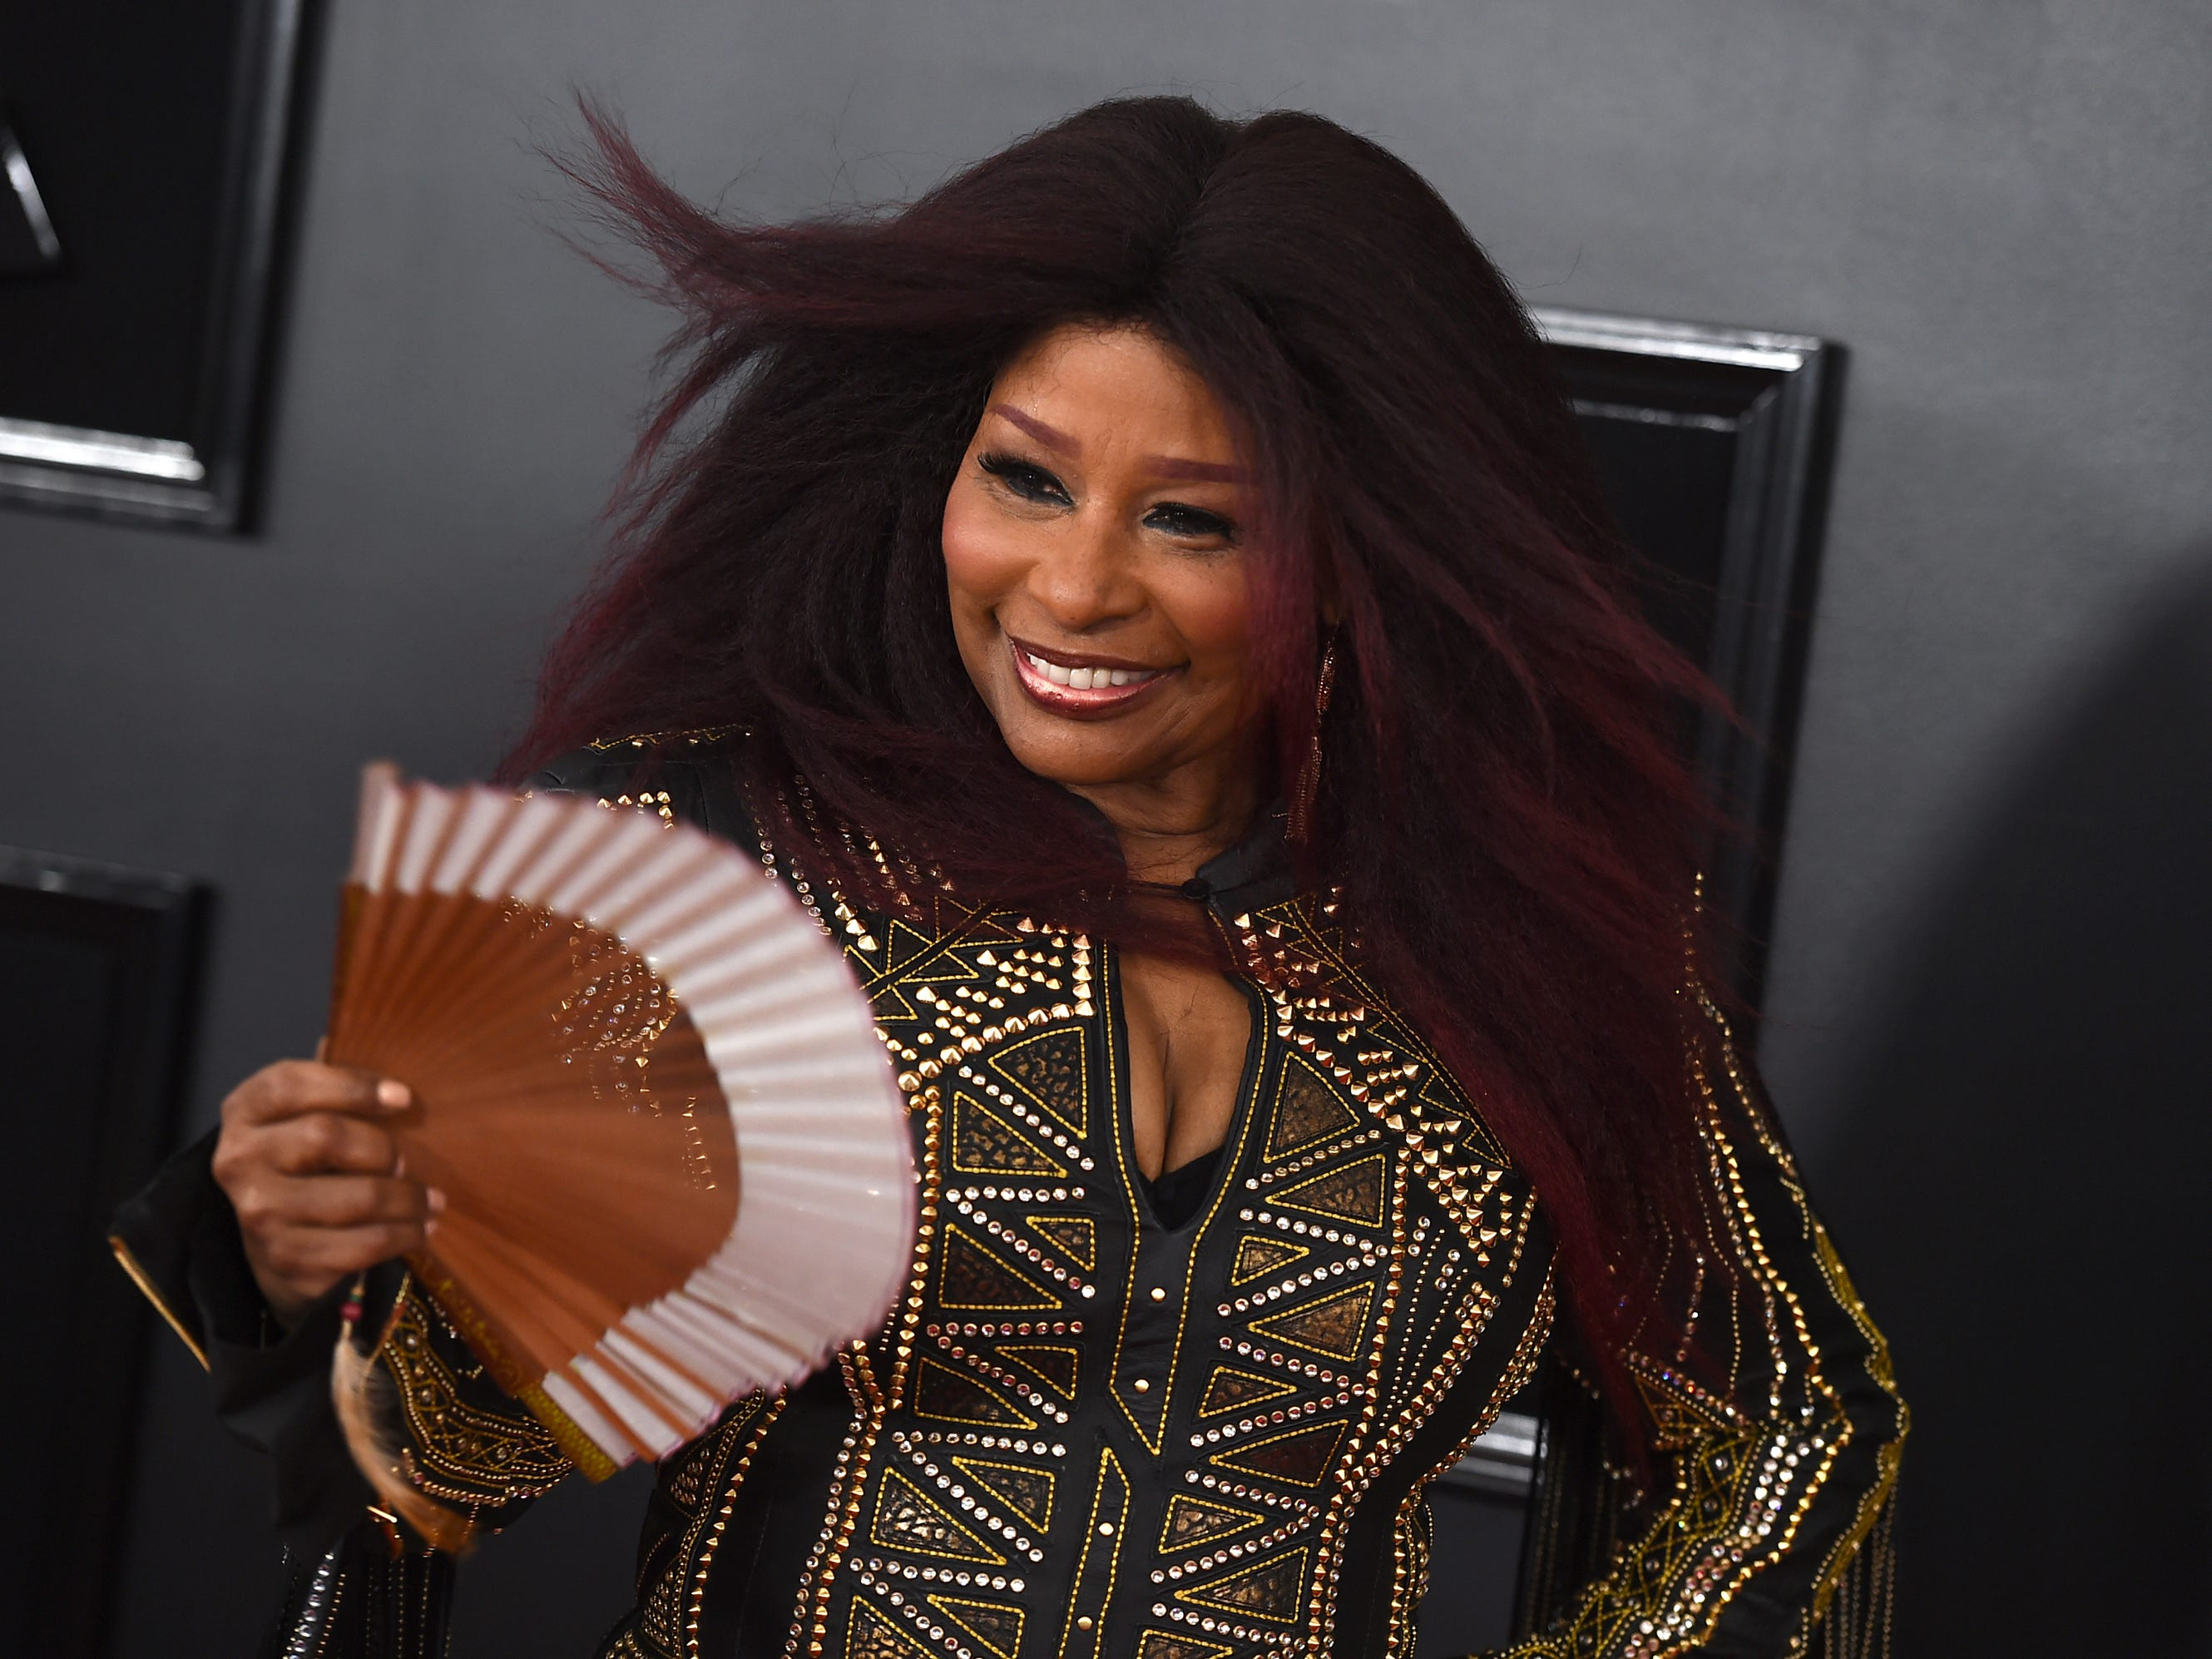 Chaka Khan arrives at the 61st annual Grammy Awards at the Staples Center on Sunday, Feb. 10, 2019, in Los Angeles.